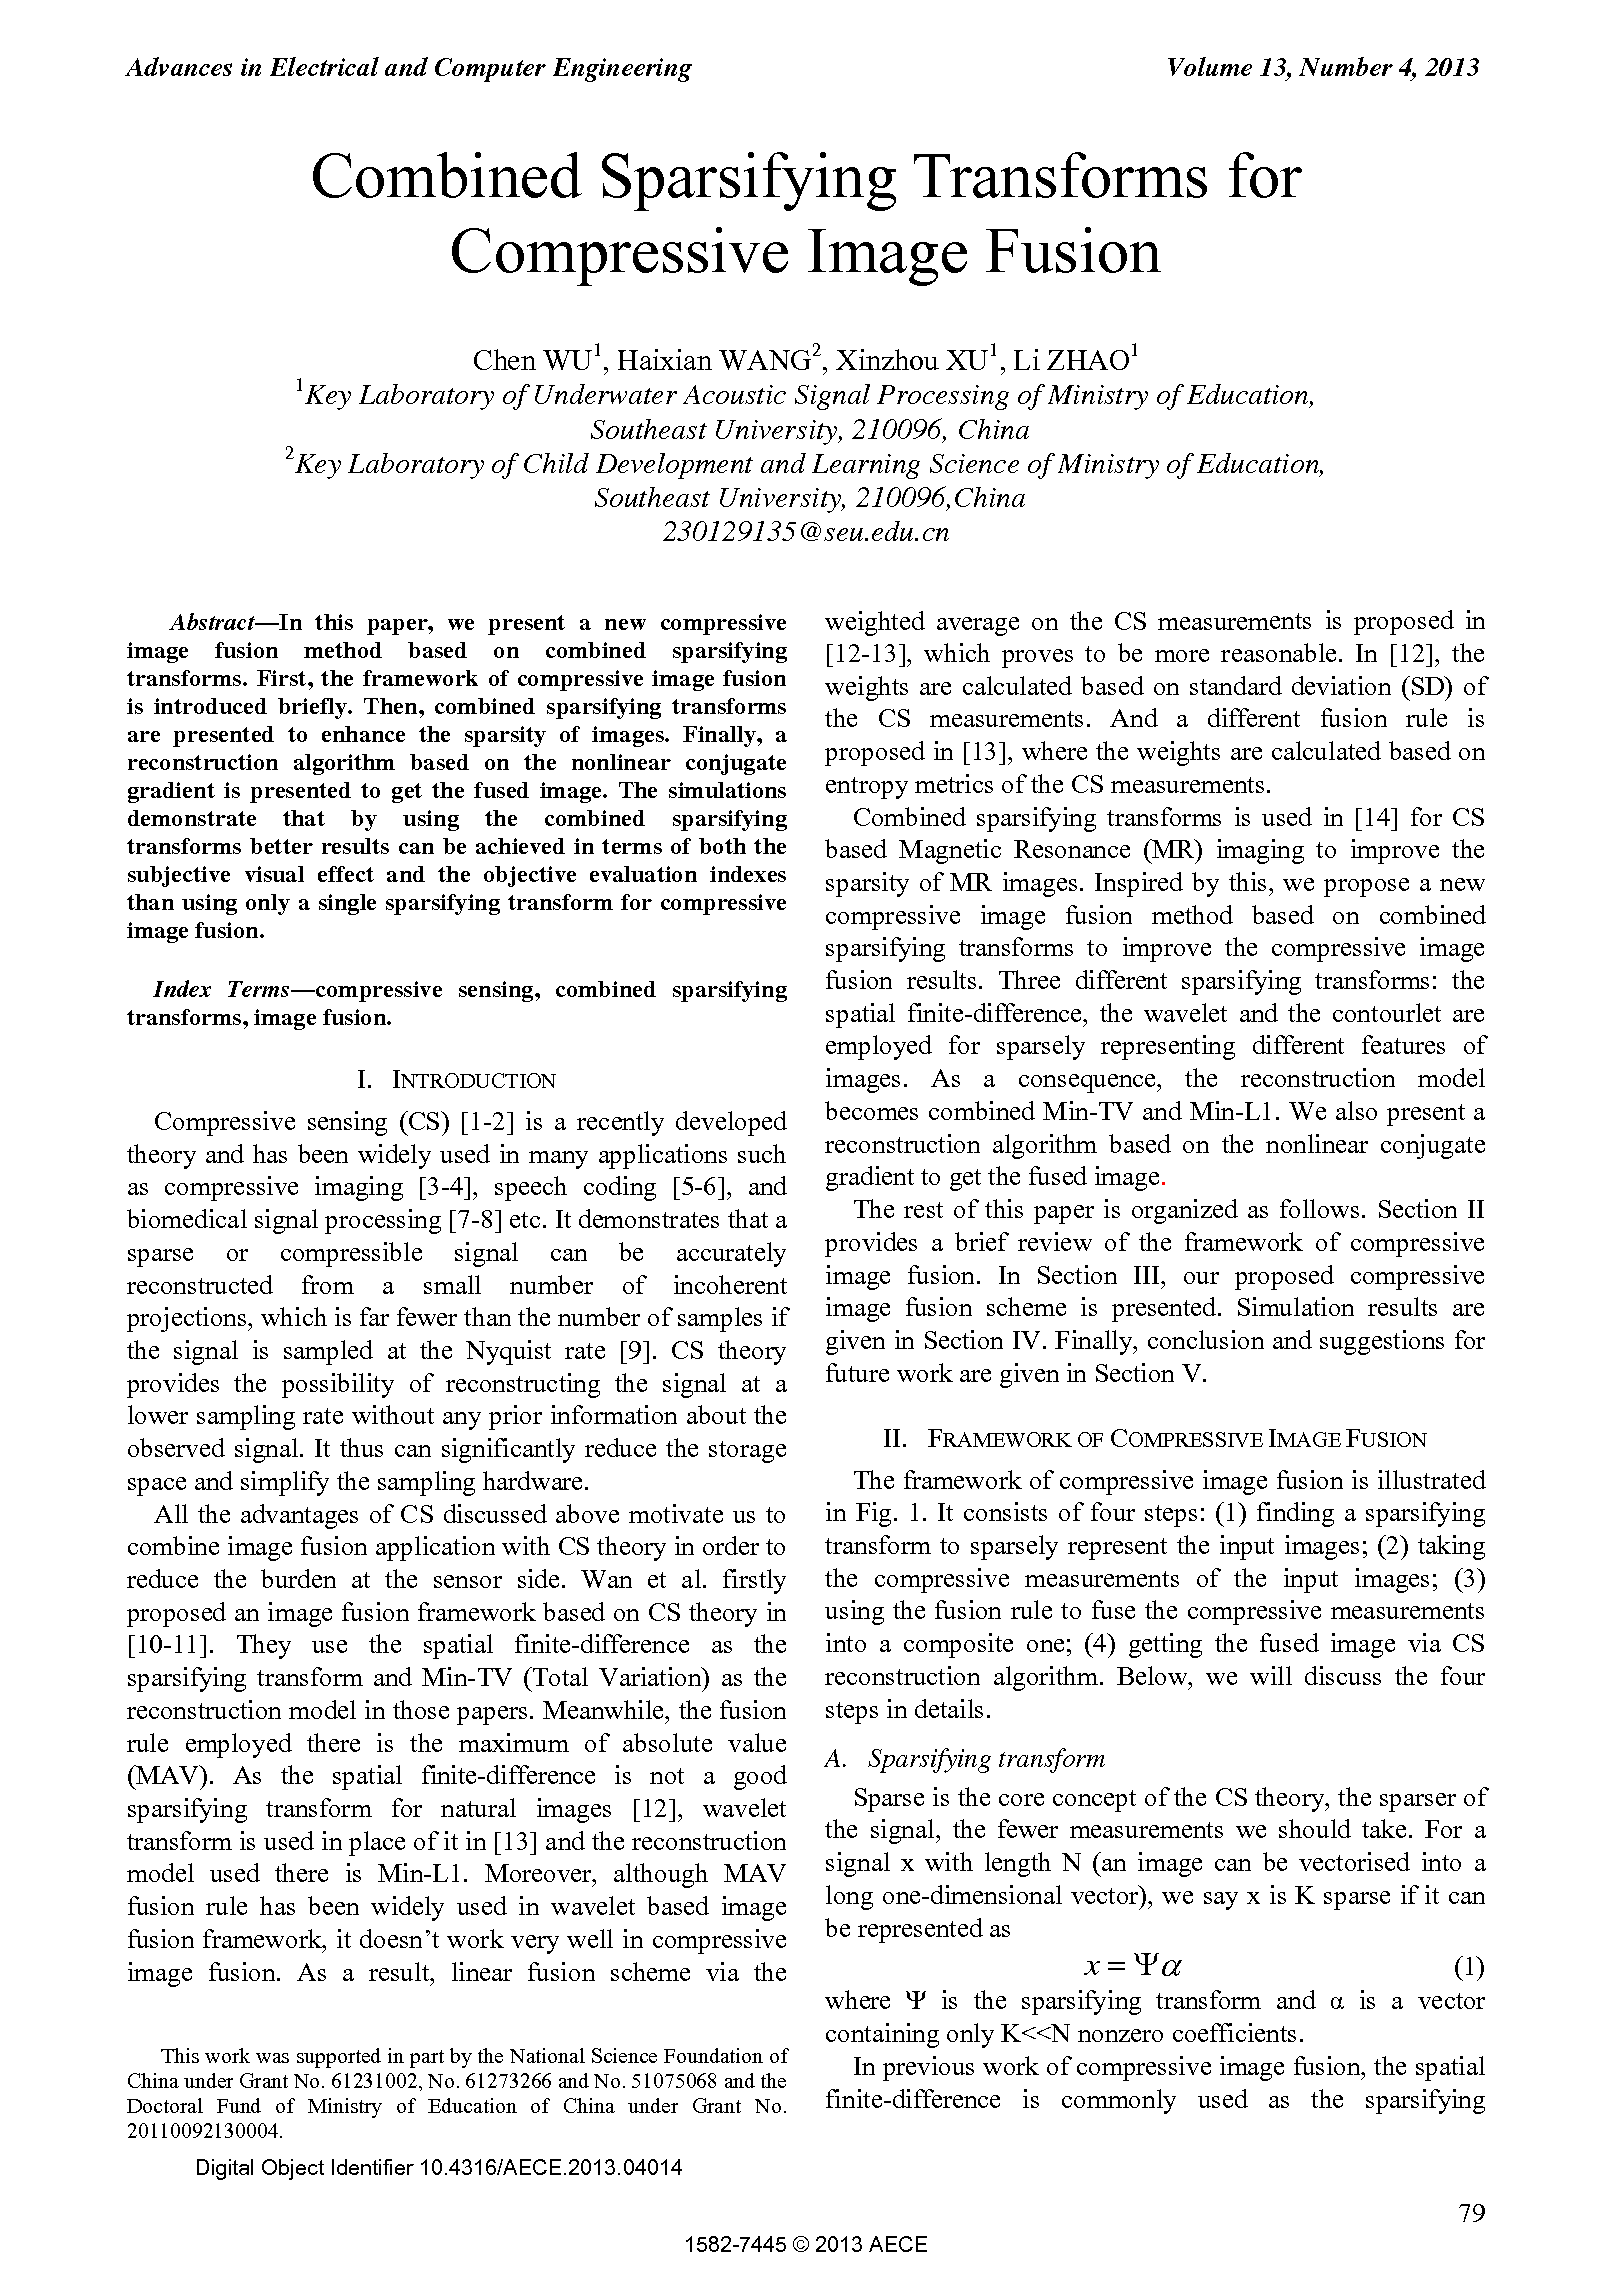 PDF Quickview for paper with DOI:10.4316/AECE.2013.04014